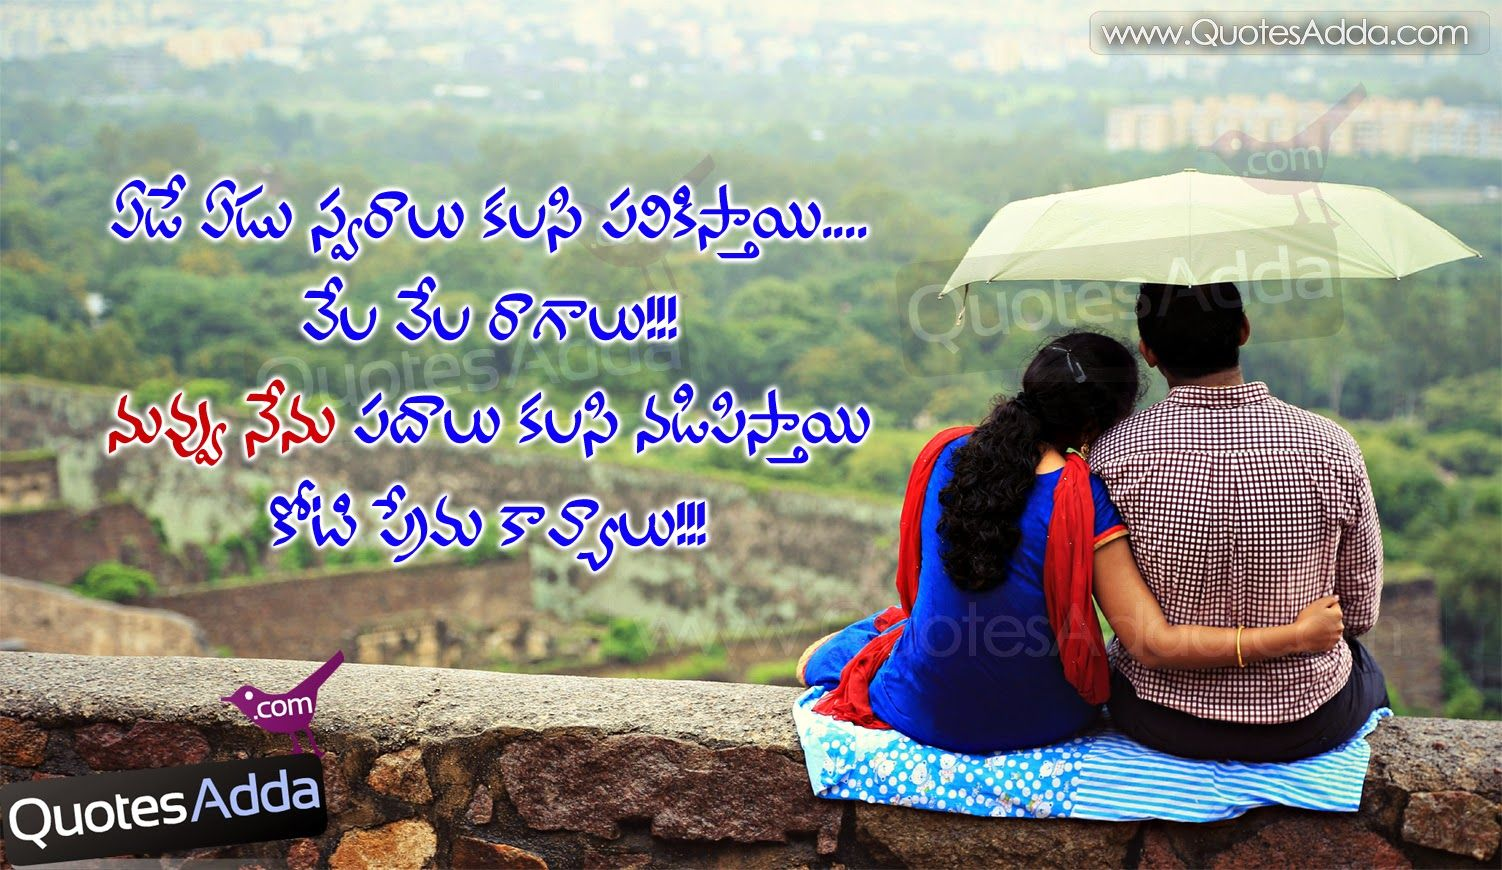 Funny Quotes About Love In Telugu : funny love proposal quotes Best Telugu Beautiful Love Quotations ...